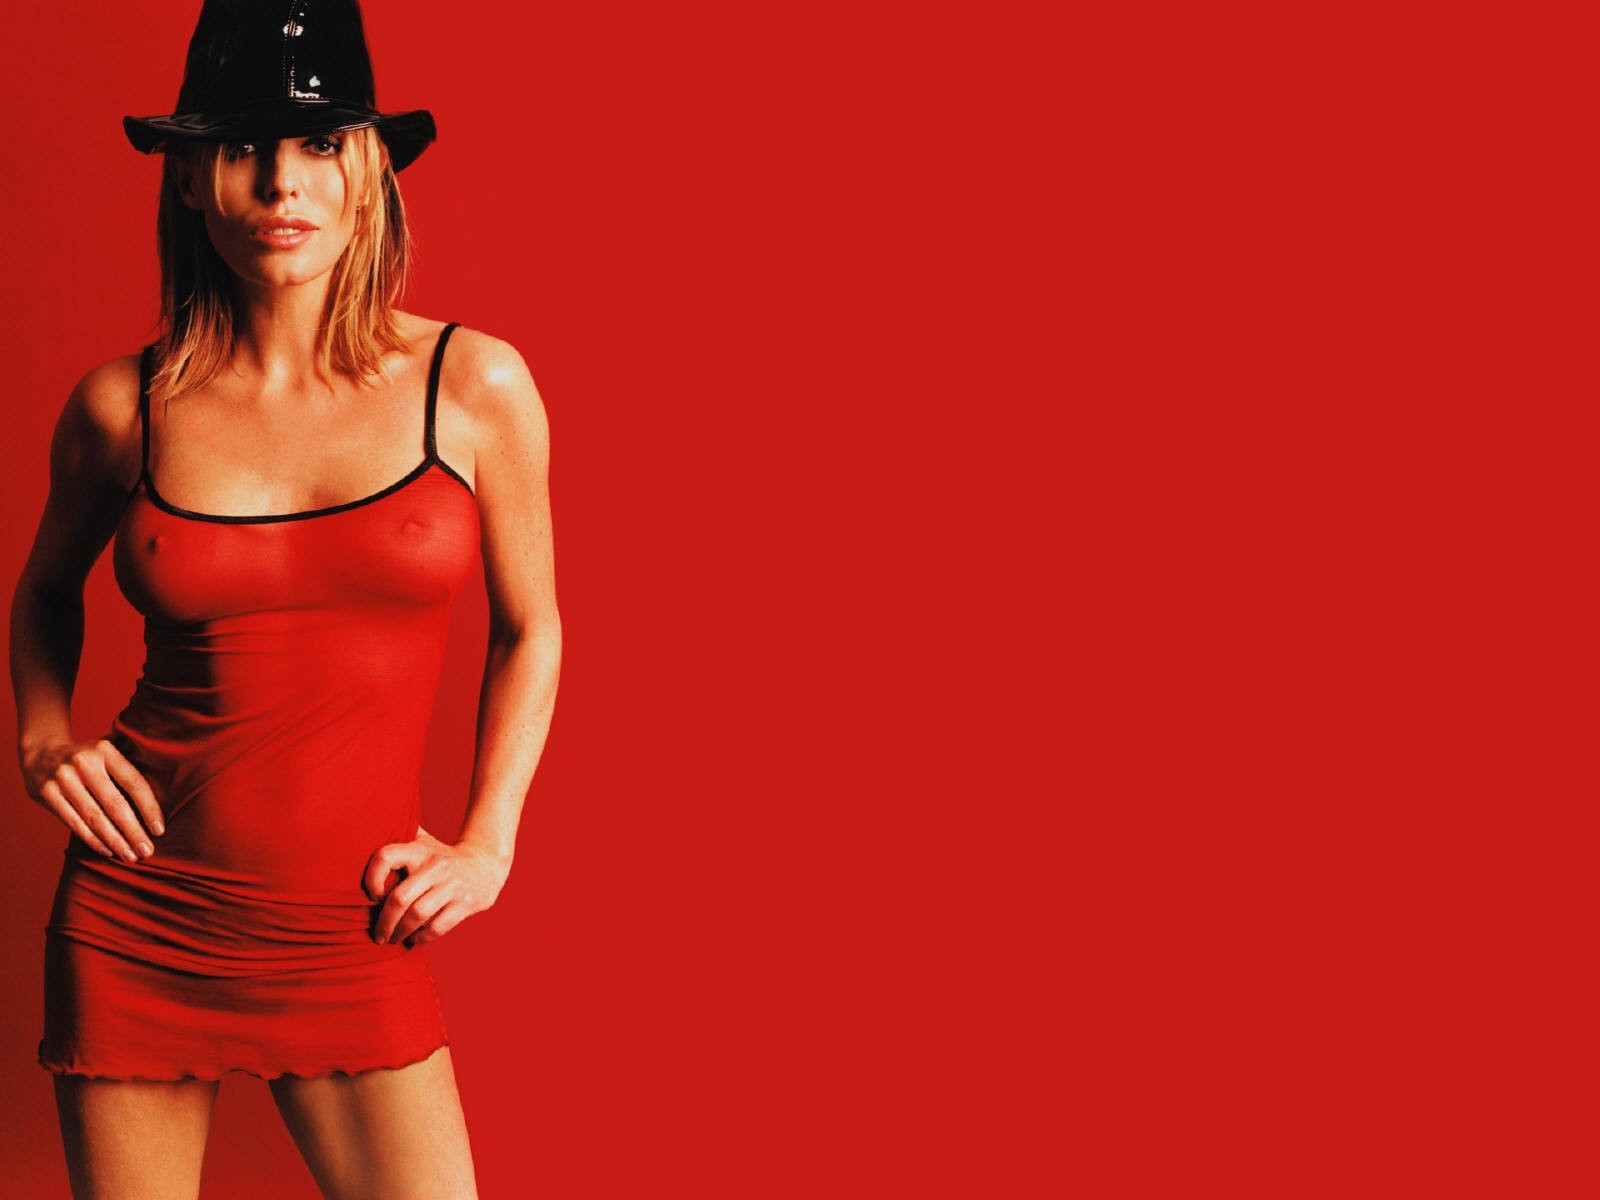 Wallpaper di Patsy Kensit